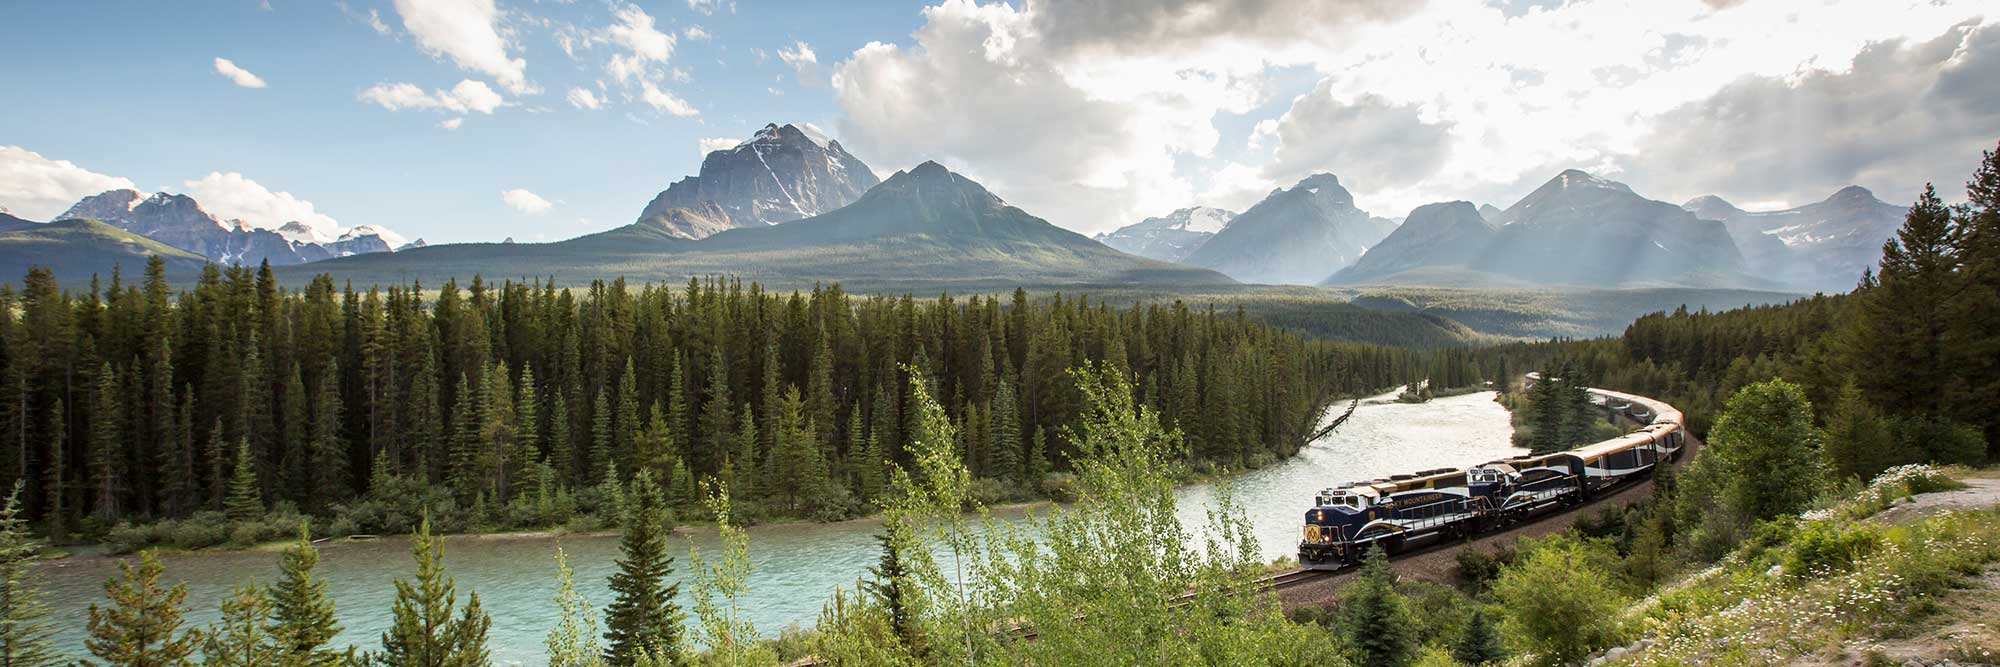 Rocky Mountaineer Train, Morant's Curve, Banff National Park